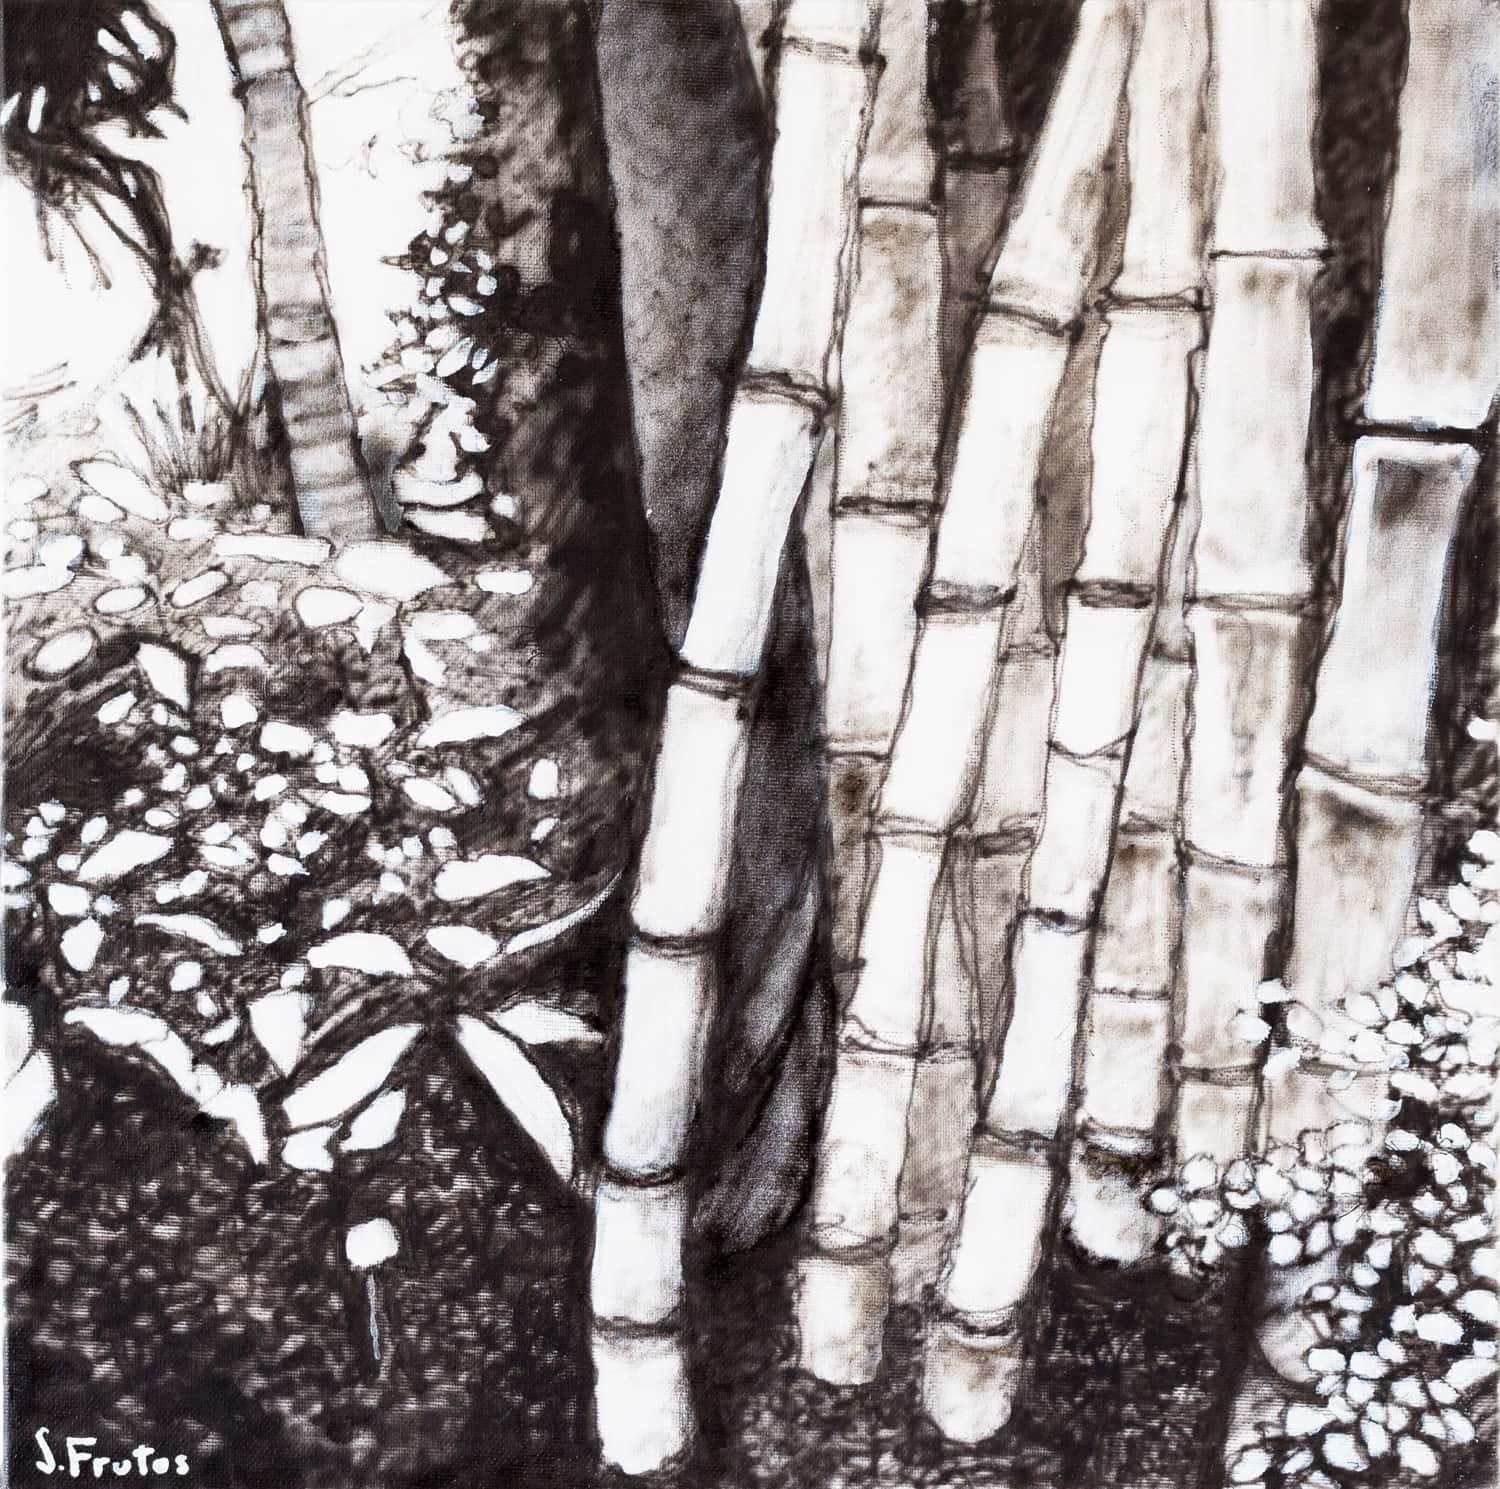 Bamboos II. Ink on canvas, 30 x 30 cm, 2021